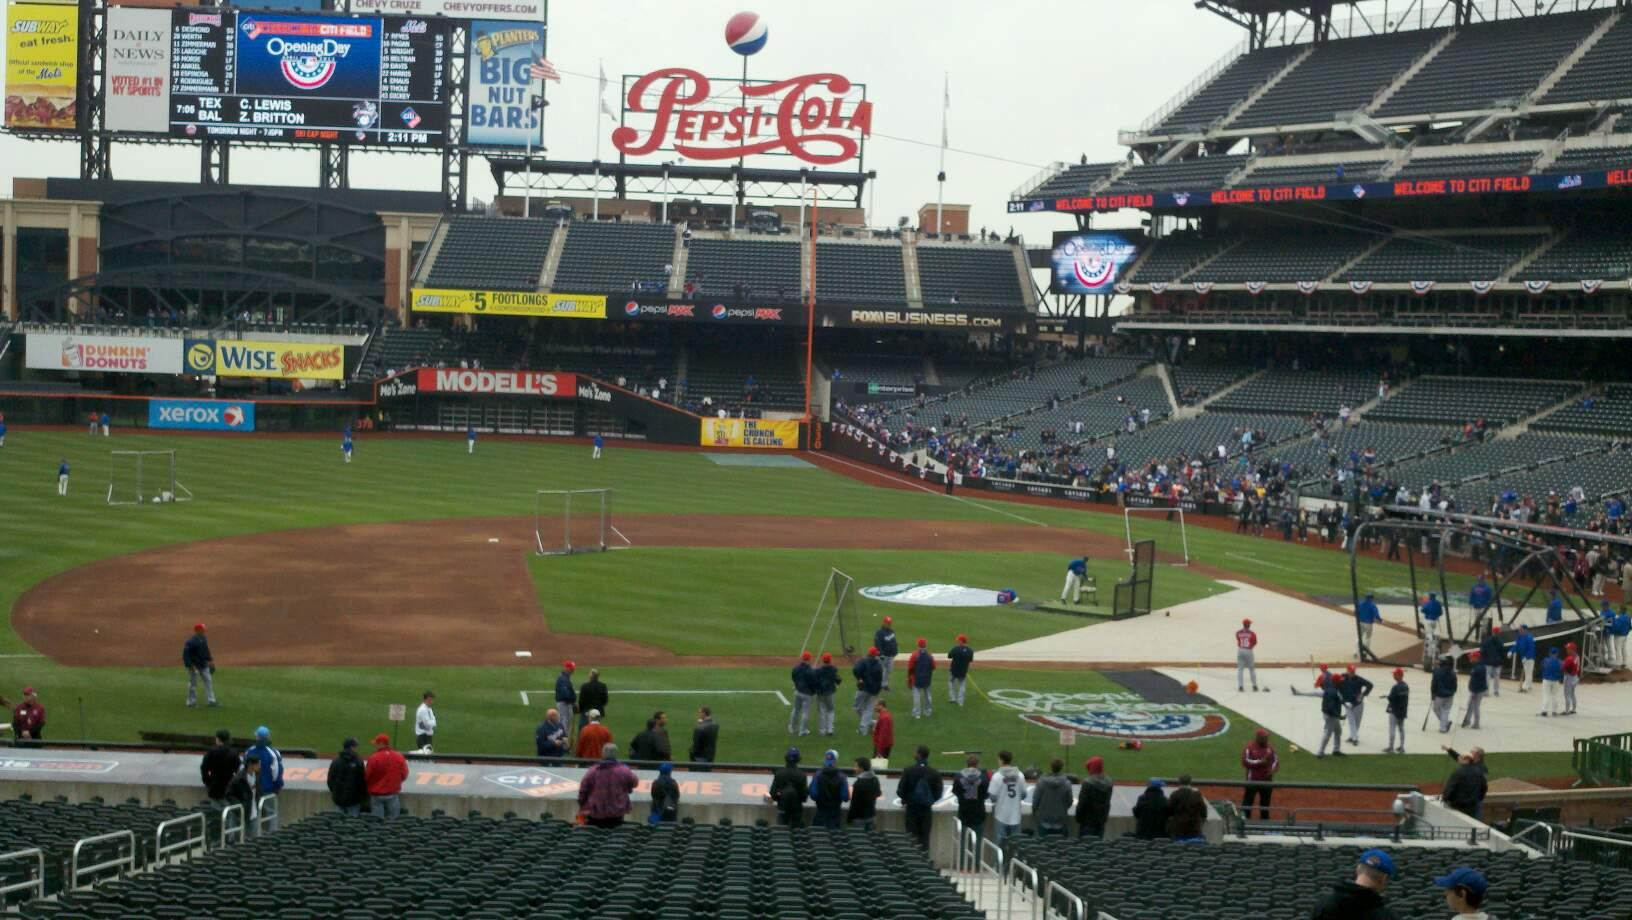 Citi Field Section 122 Row 31 Seat 5